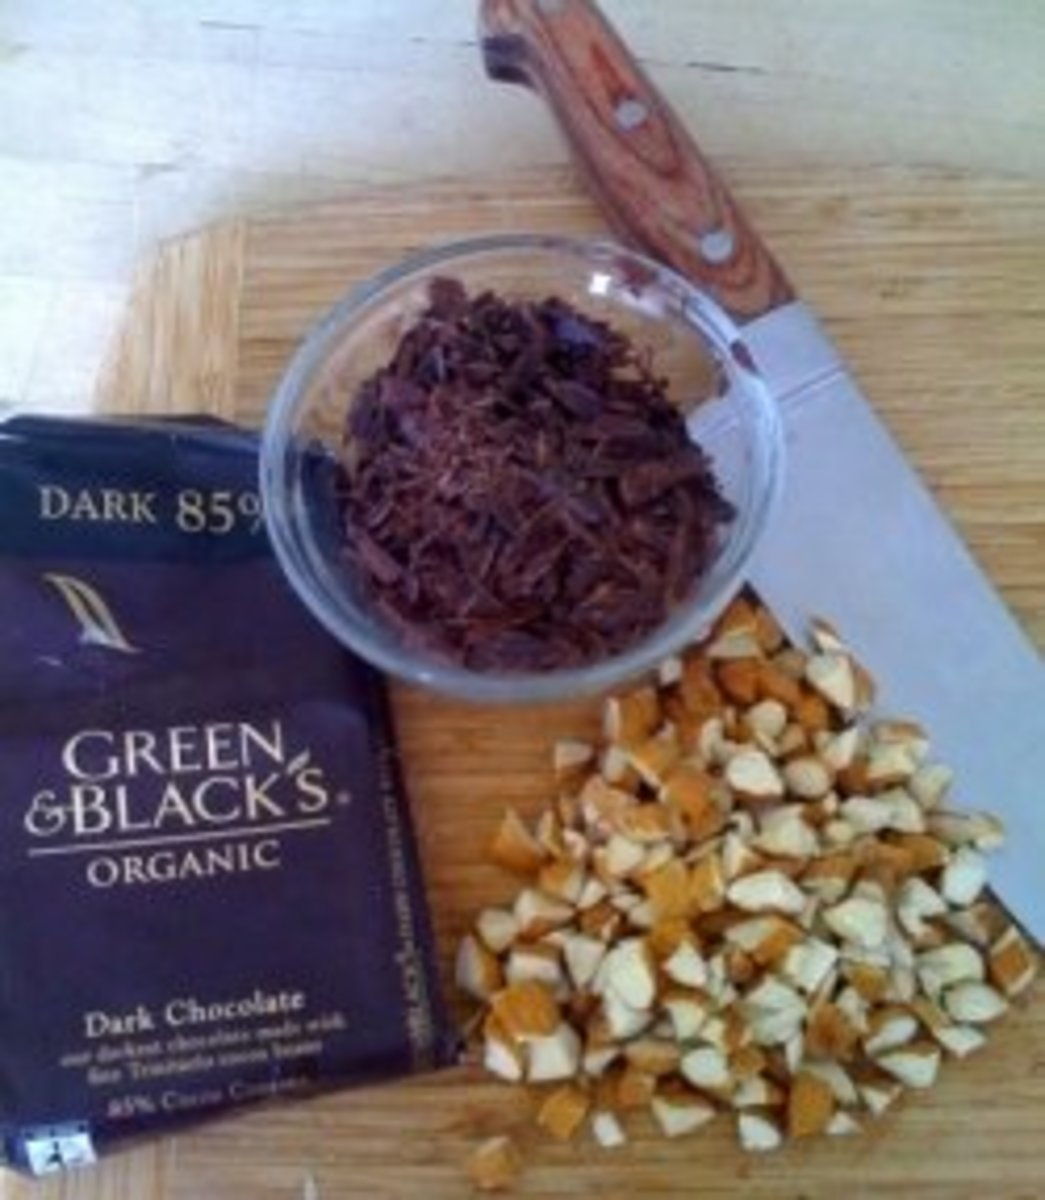 If you're adding goodies, after 15 minutes, slowly add 1/2 to 1 cup chopped nuts, candy, cookies, or fruit of your choice.